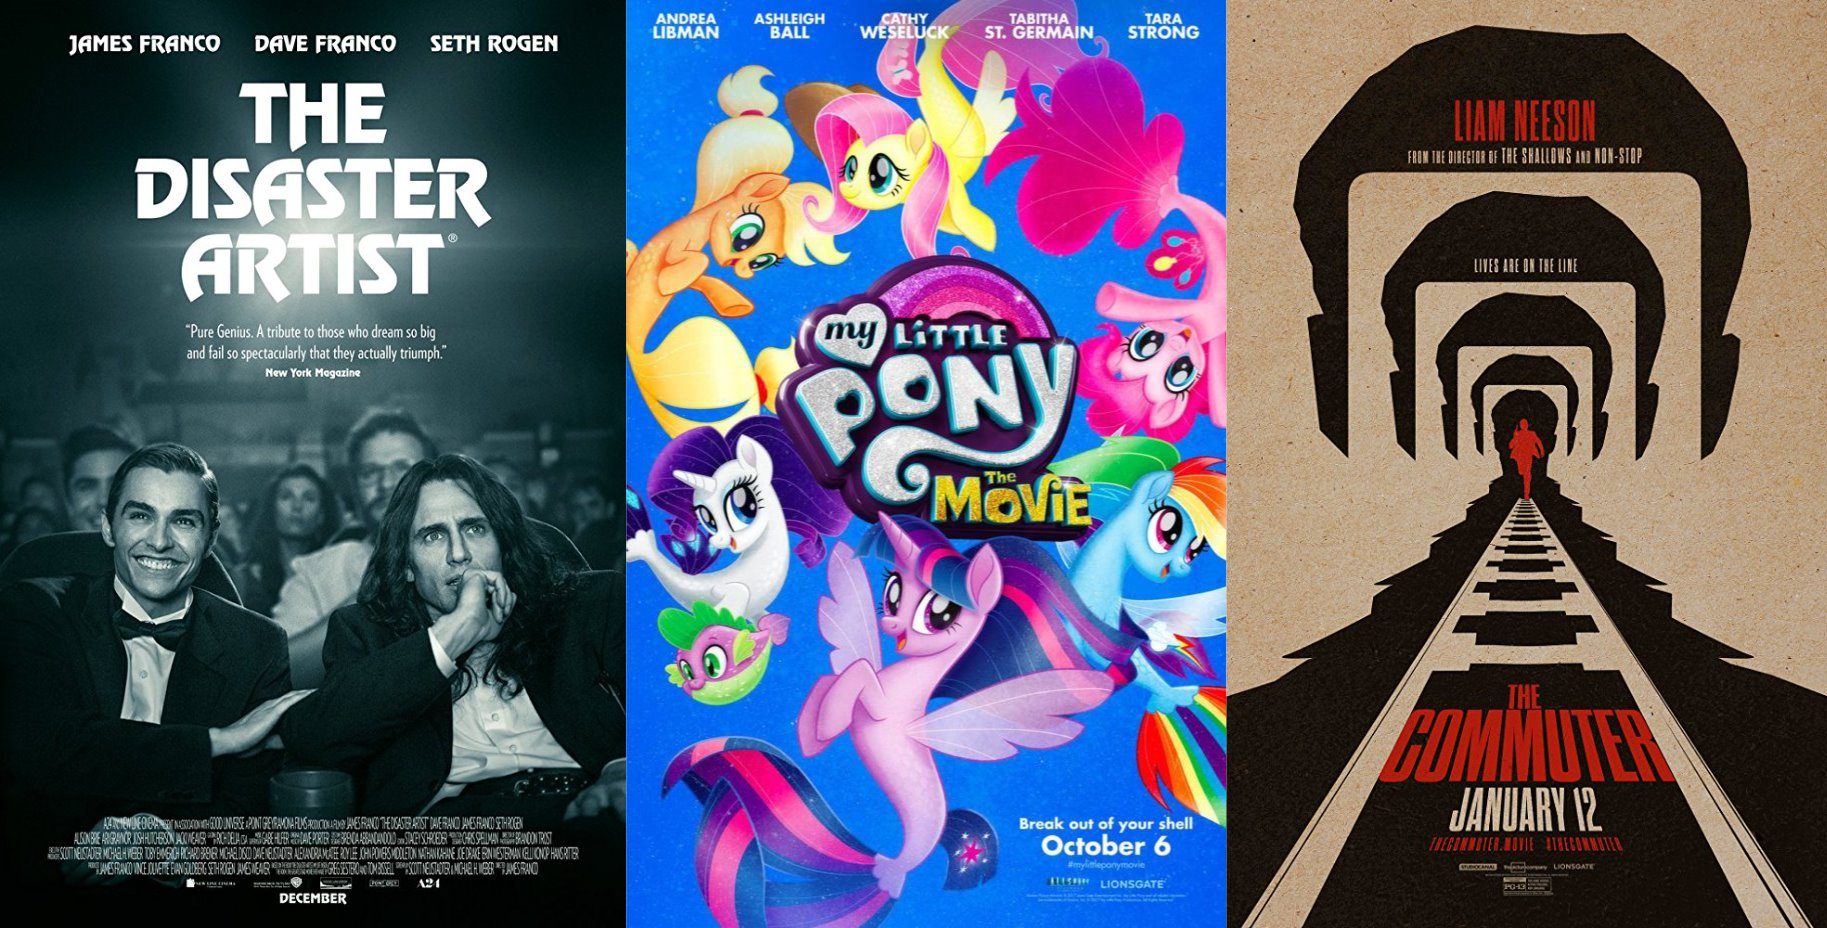 Trailer-Watchin' Wednesday: The Disaster Artist, My Little Pony, The Commuter